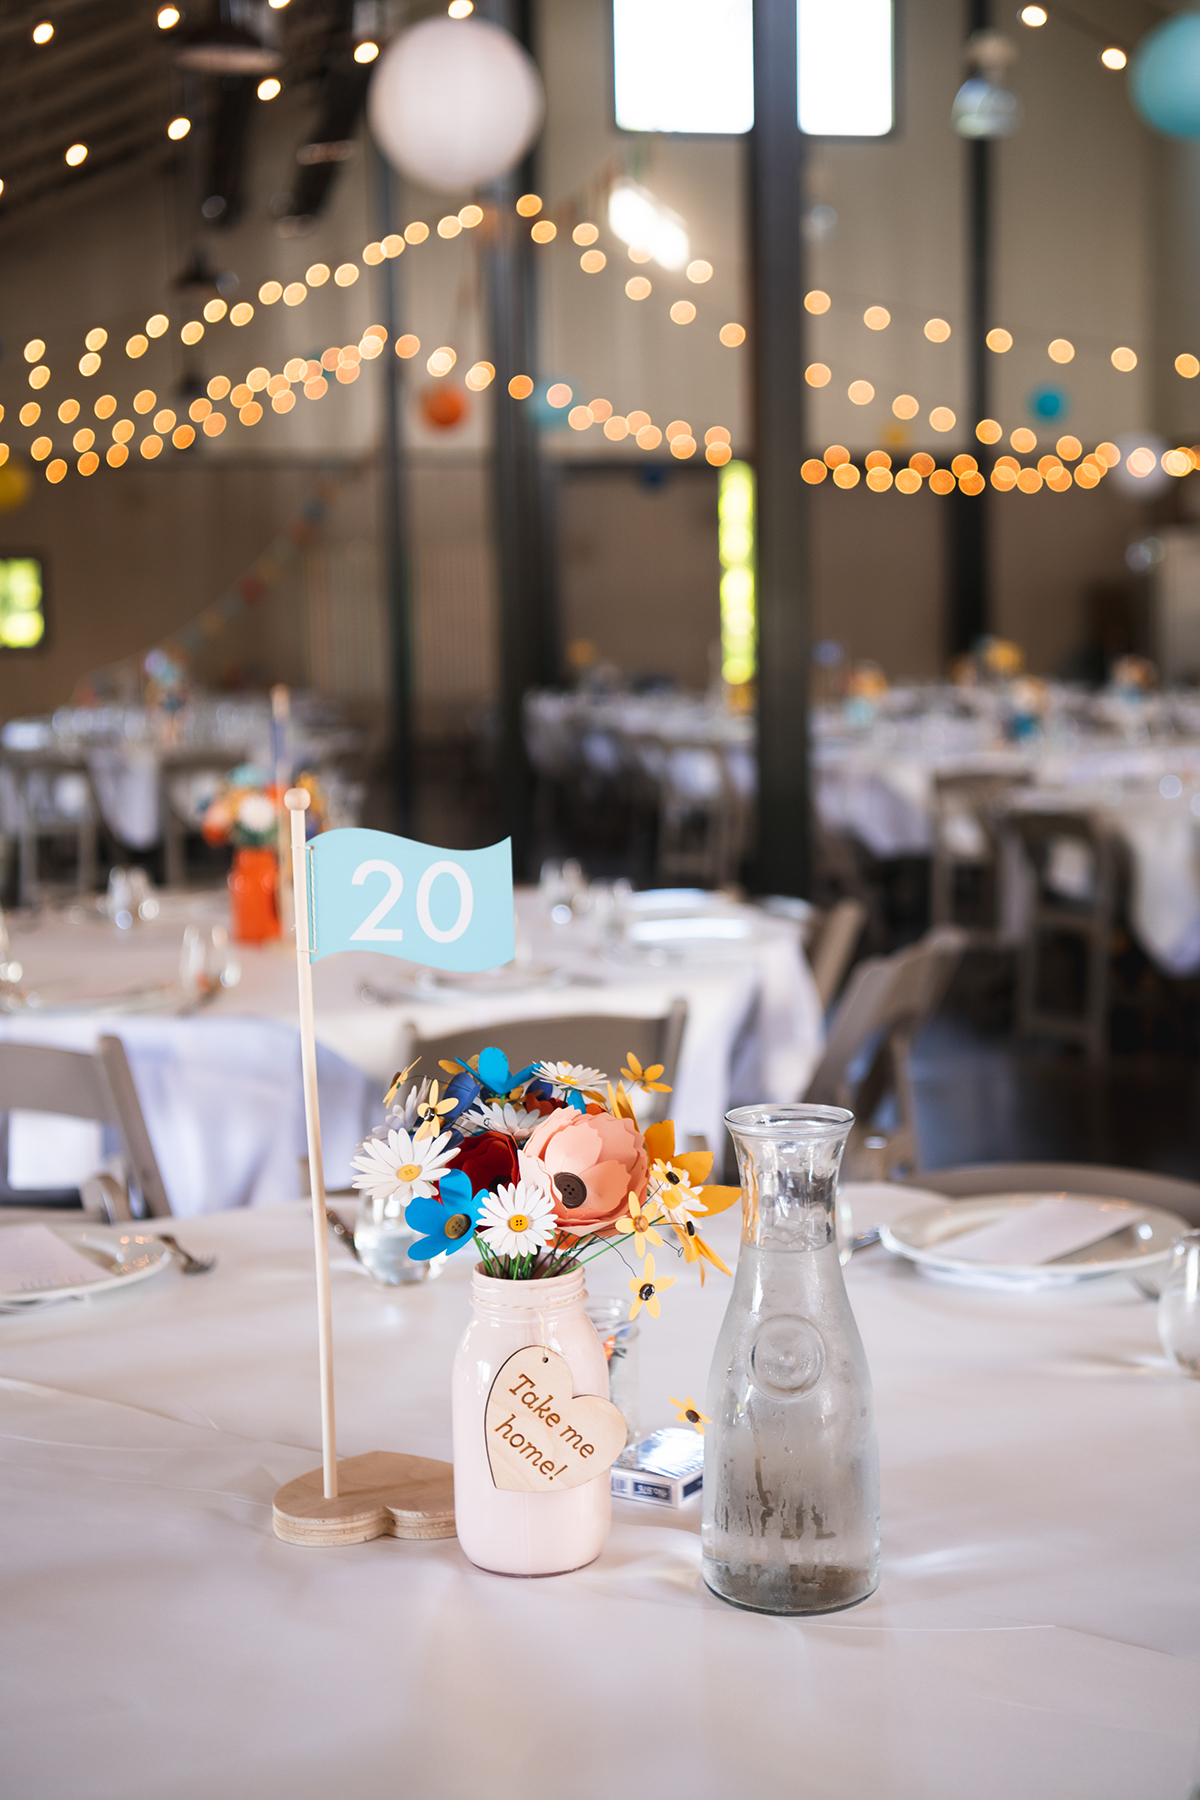 colored mason jars, paper flowers and mini golf hole flag table numbers   Robin + Tom   Holey Moley contestants   Shuttersmack Minnesota photographer   Sixpence Events and Planning   Gale Woods Reception   Big Stone Mini Golf   .jpg